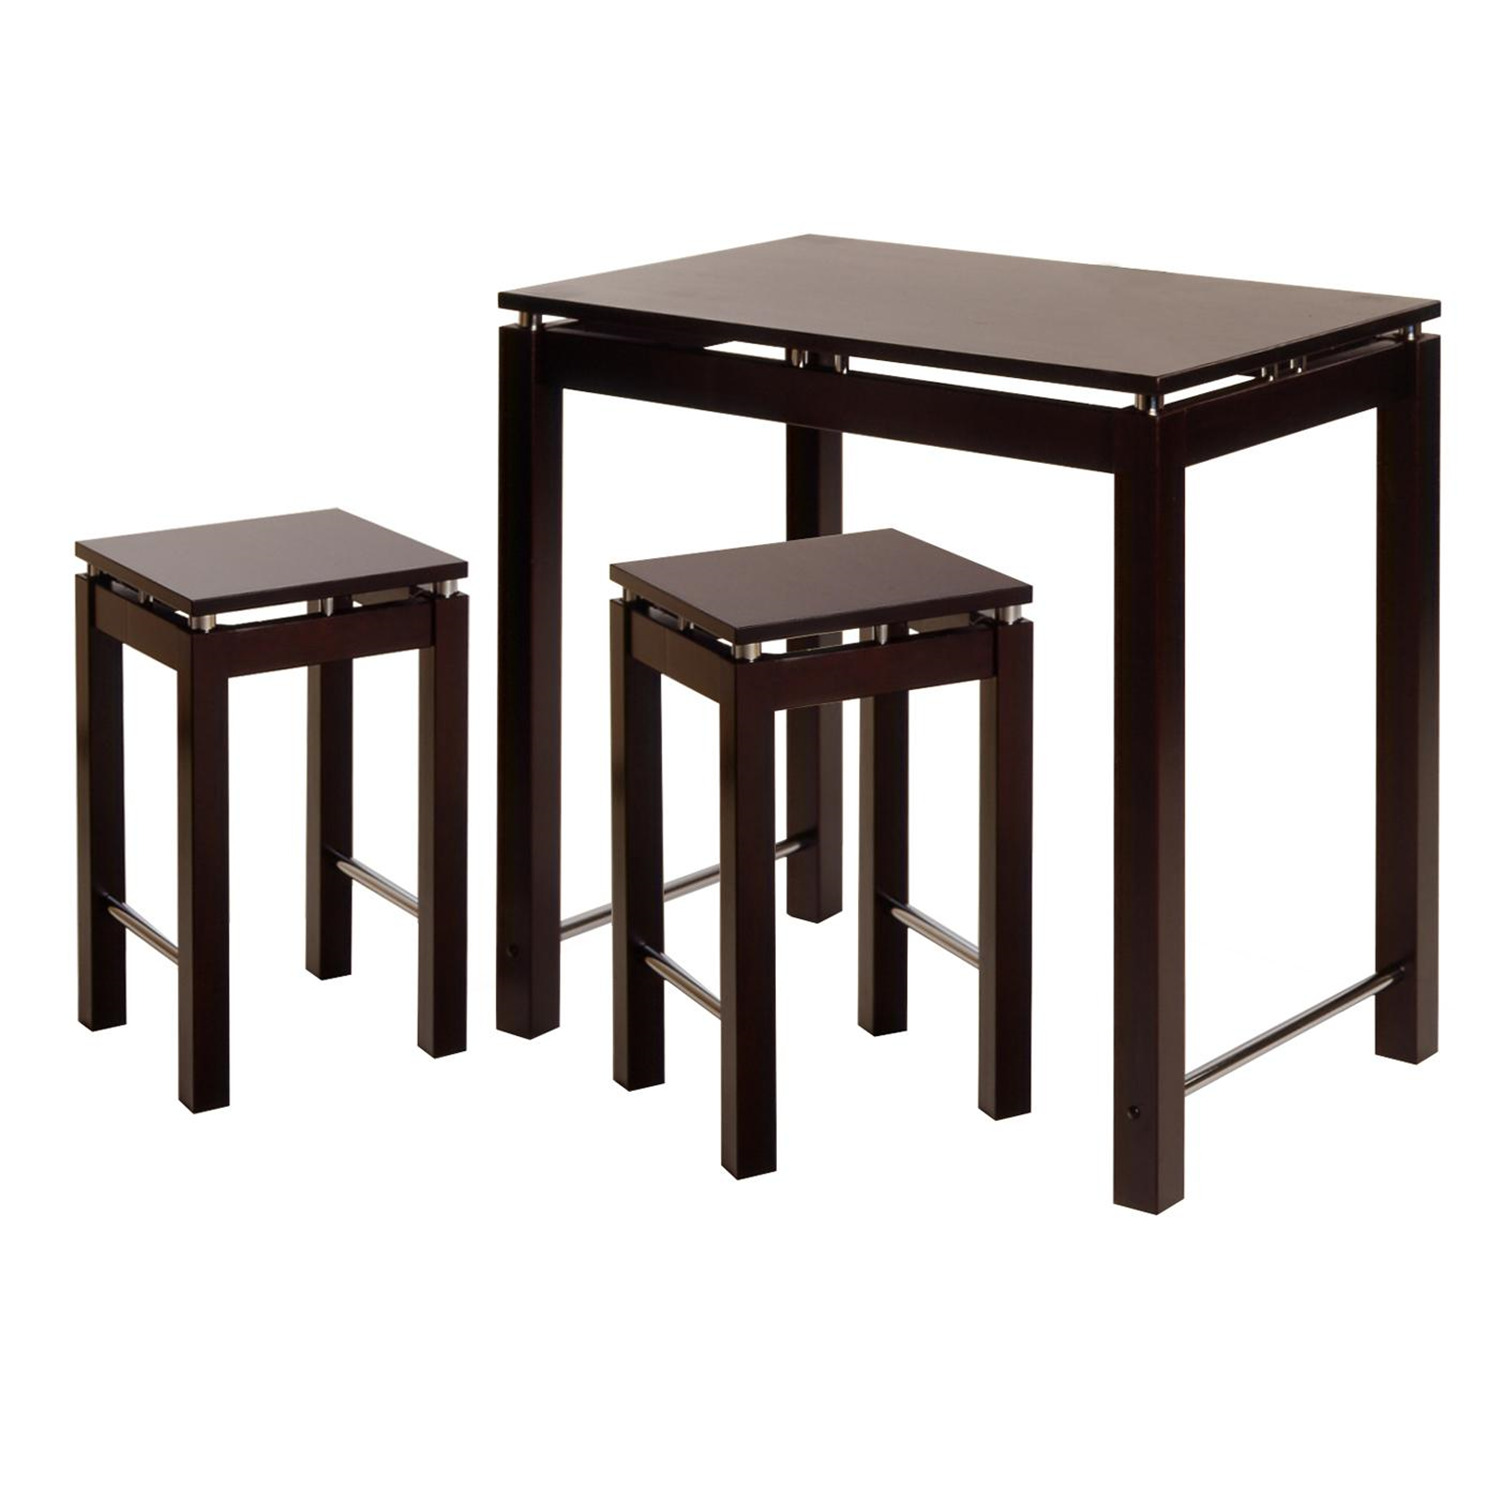 Winsome Linea 3pc Pub Kitchen Set Island Table With 2 Stools By OJ Commerce